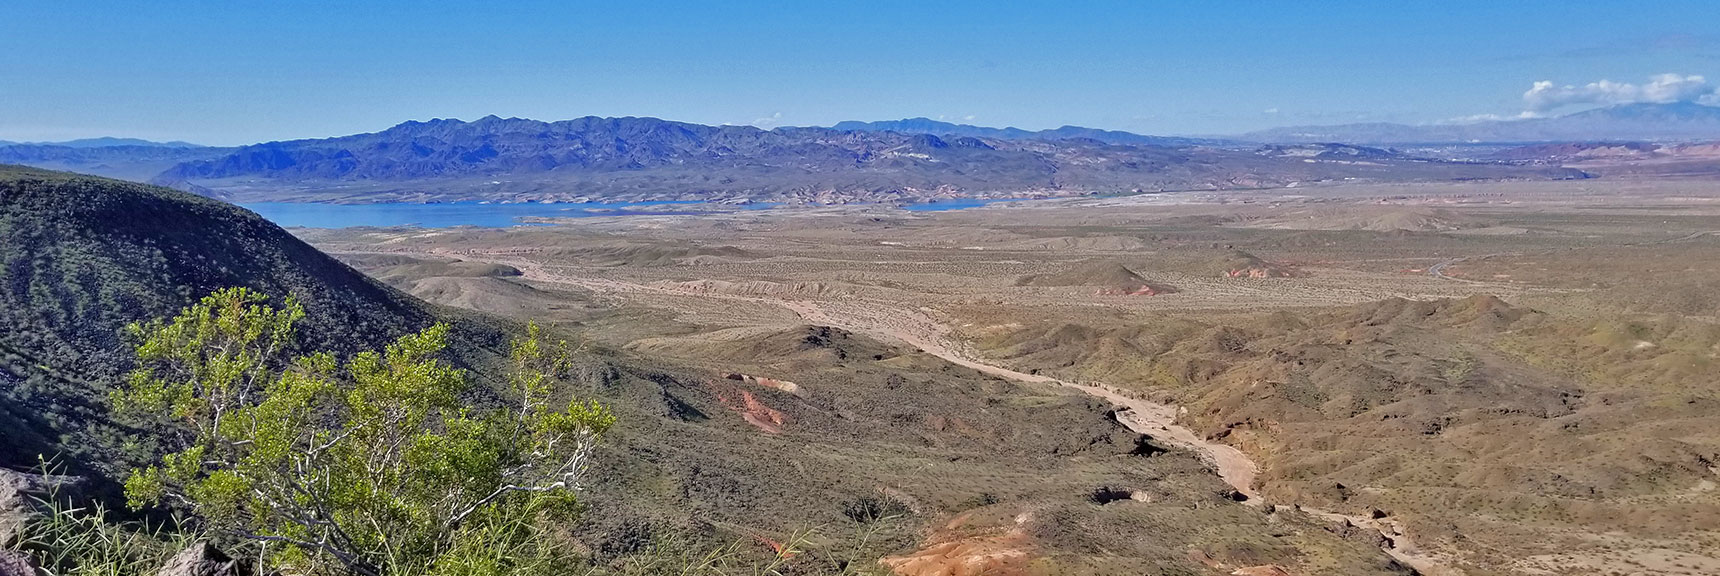 View Southwest Toward Lake Mead from Black Mesa in Lake Mead National Recreation Area, Nevada